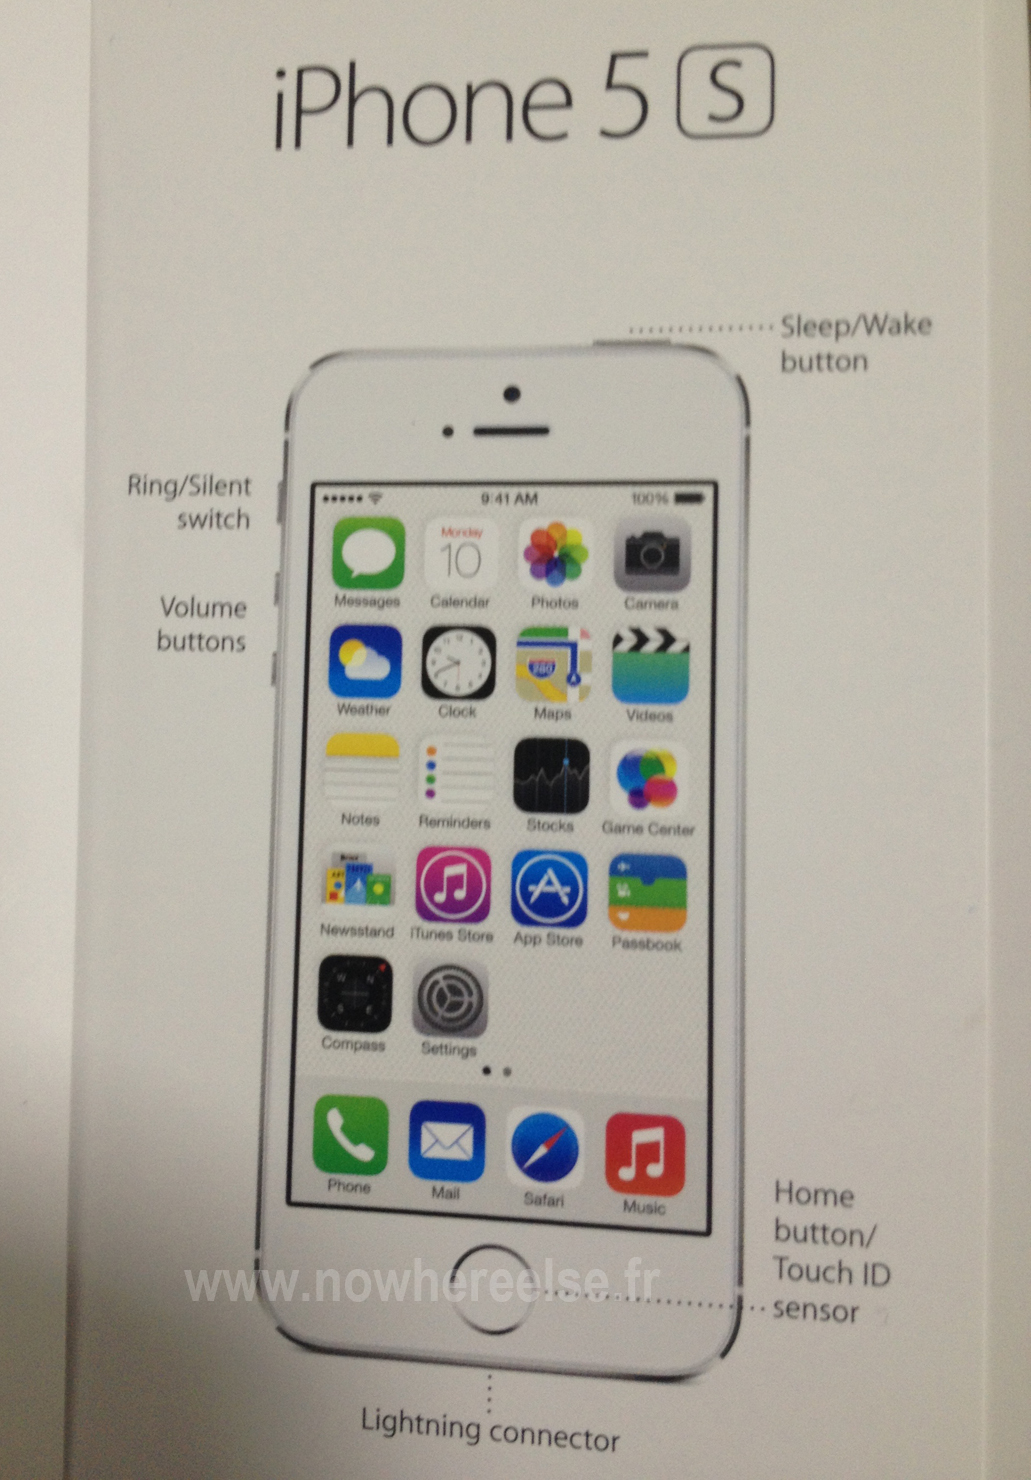 Manual de Usuario iPhone 5S